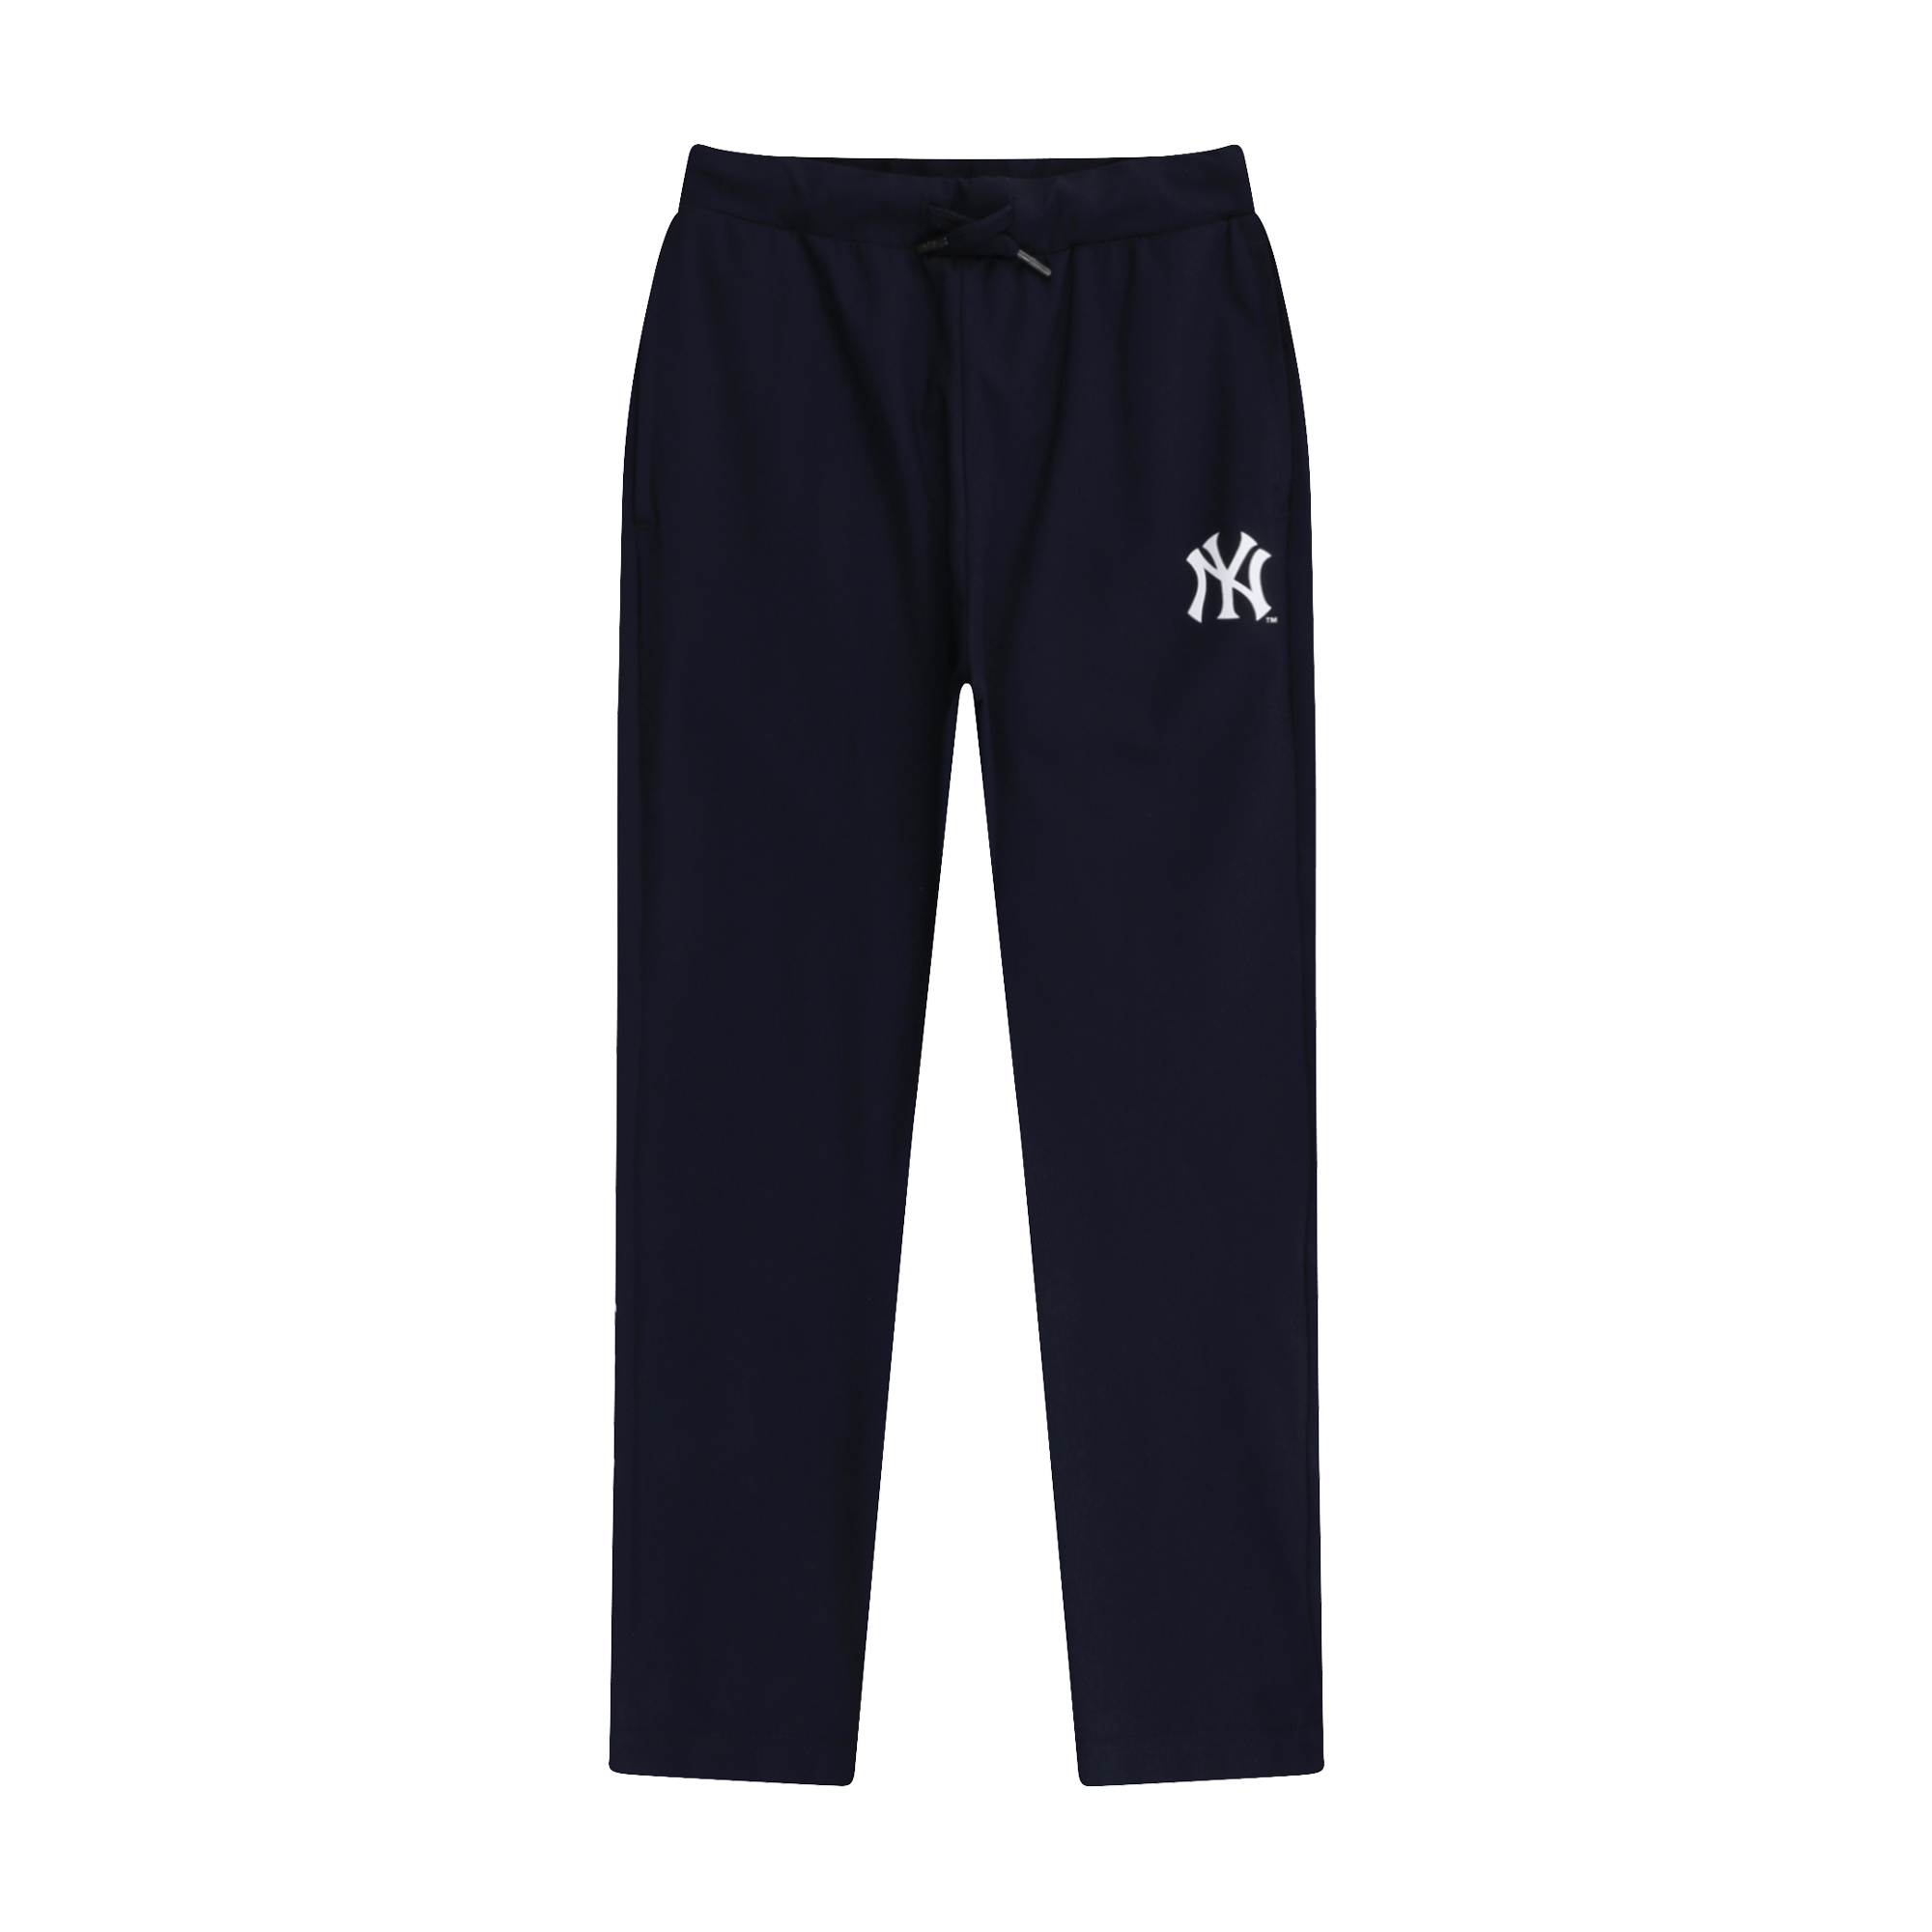 NEW YORK YANKEES UNISEX SIDELINE LOGO TRIKOT PANTS